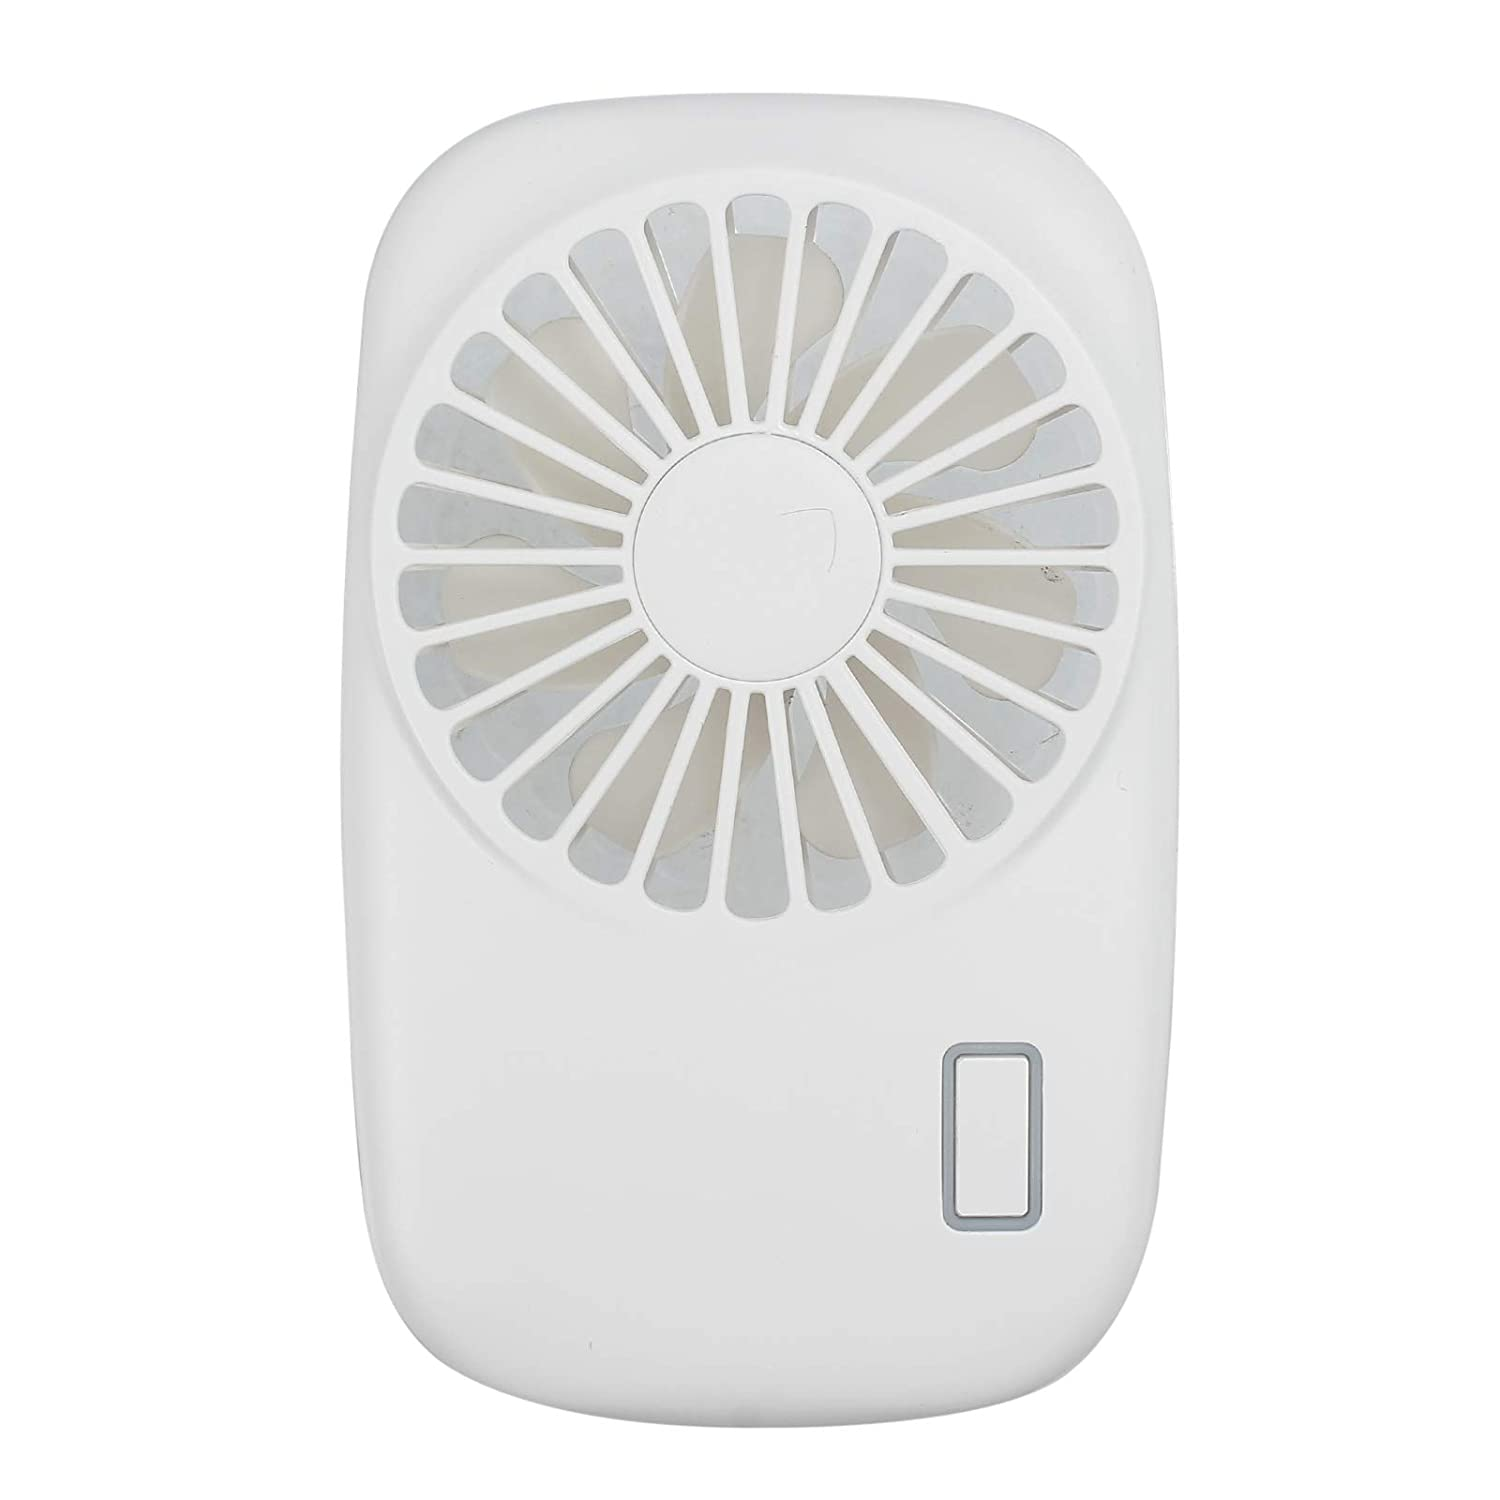 Portable Mini Fan Handheld Personal Fan Battery Operated Rechargeable Pocket Fan for Outdoor Travel Home Proster